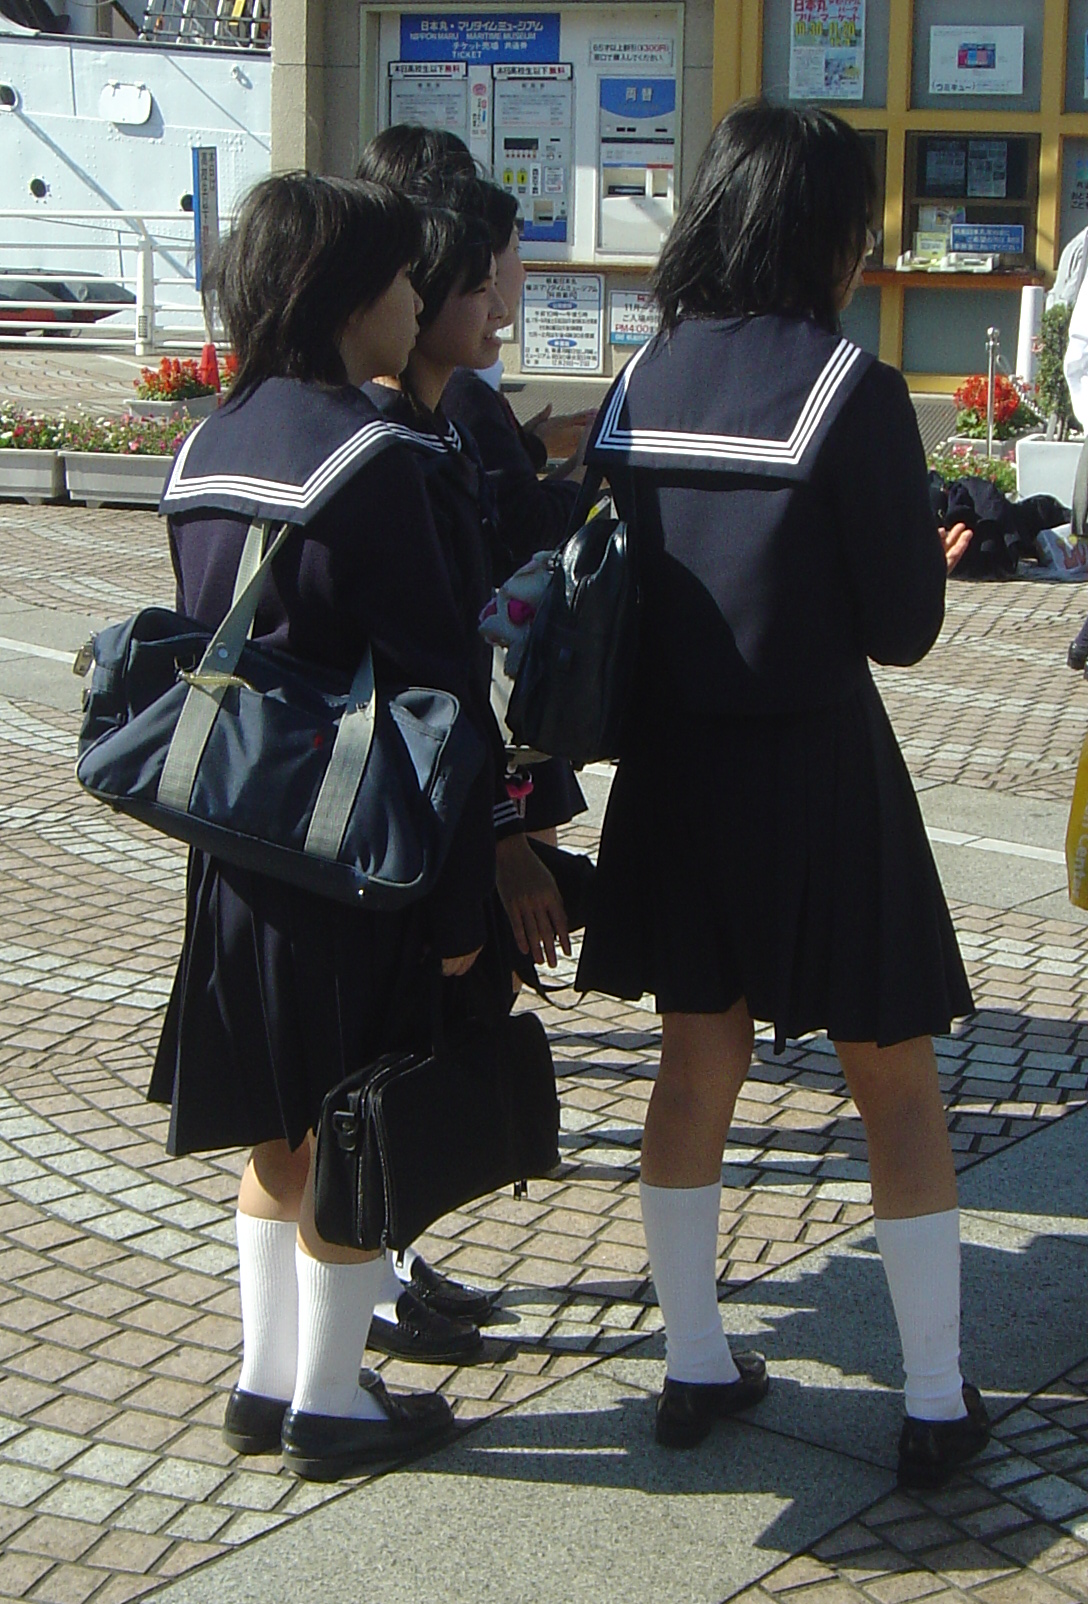 Junior high boy dating elementary school girl